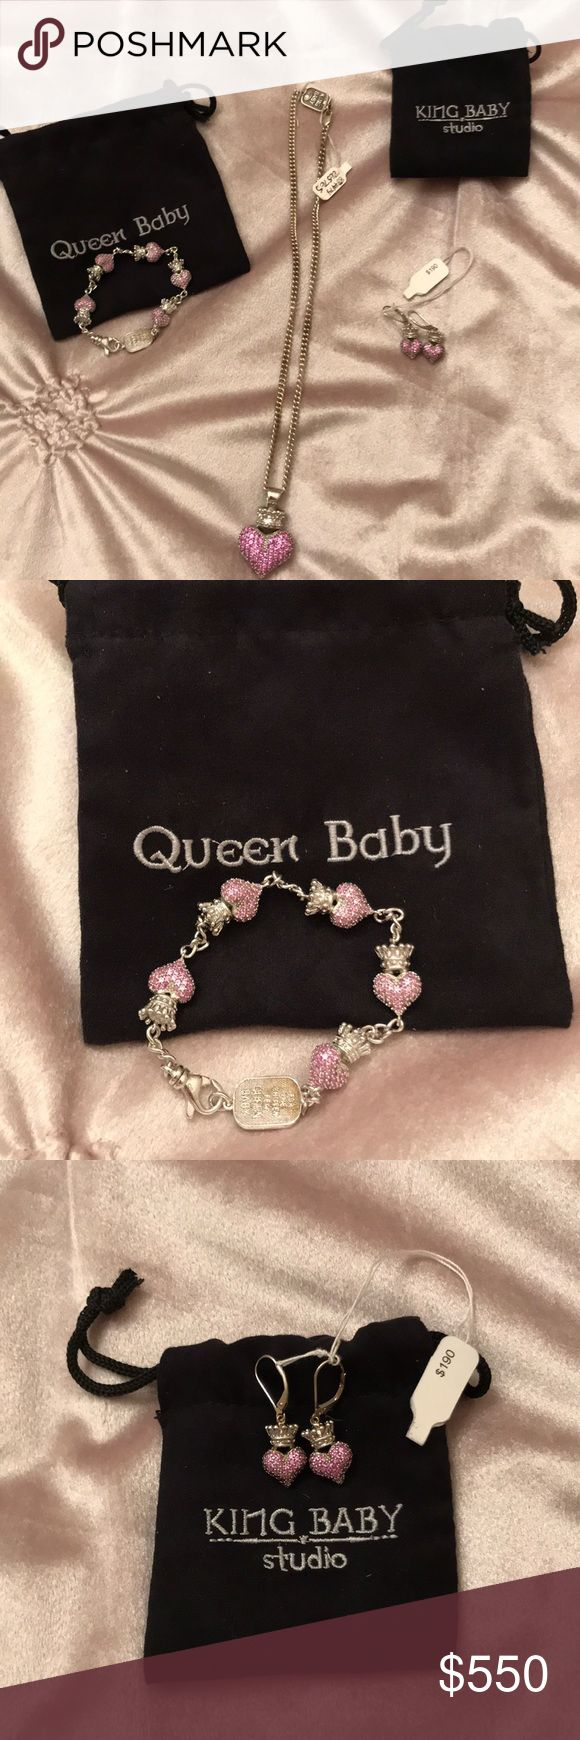 King baby jewelry King baby necklace bracelet and earrings set. Sterling with Pink stones. All brand new protective pouches included Will sell pieces separately or as a set. Open for offers king baby Jewelry